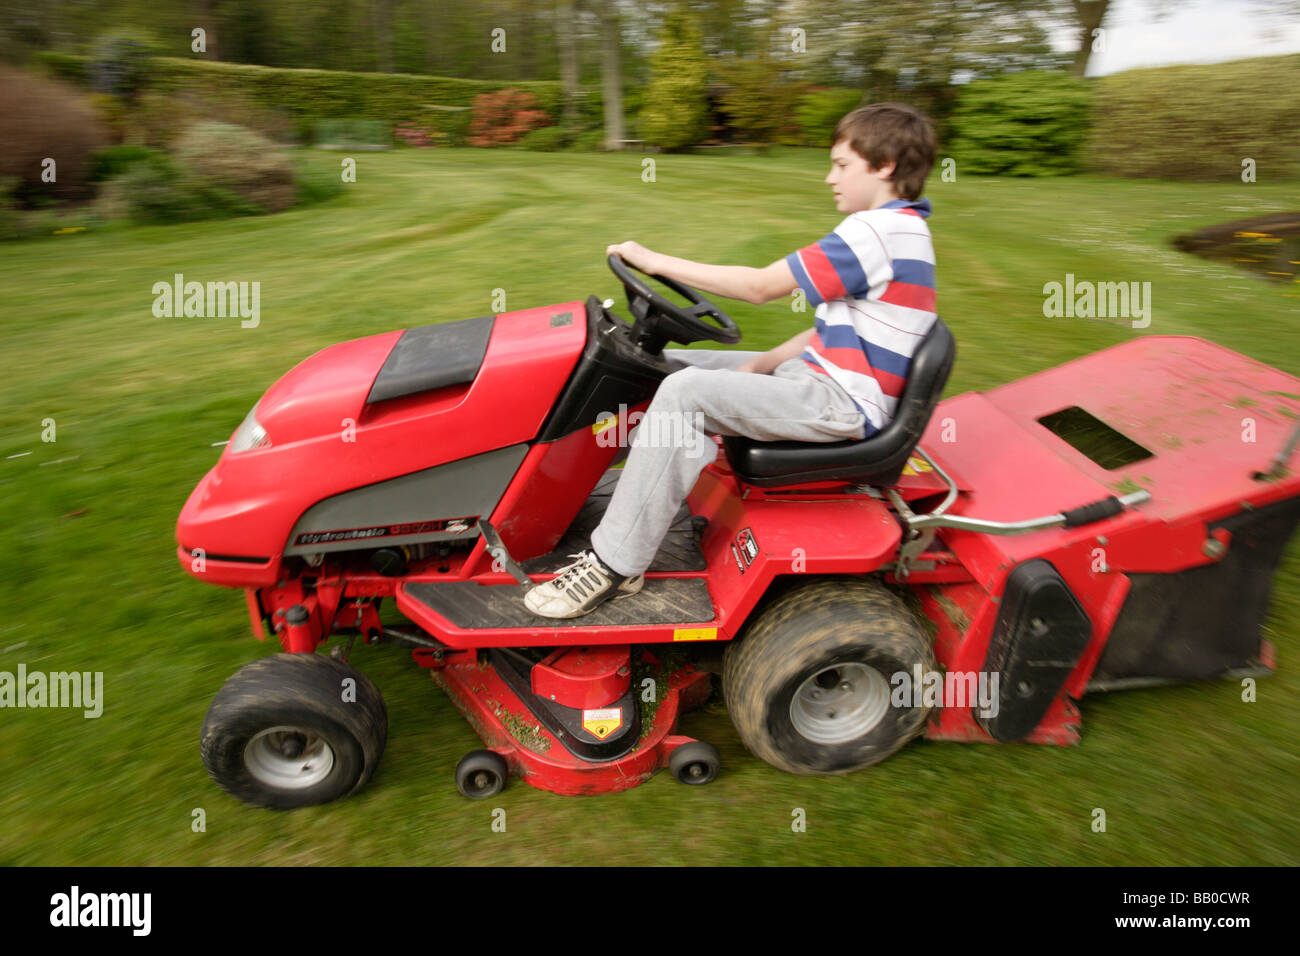 A boy doing the lawn mowing - Stock Image